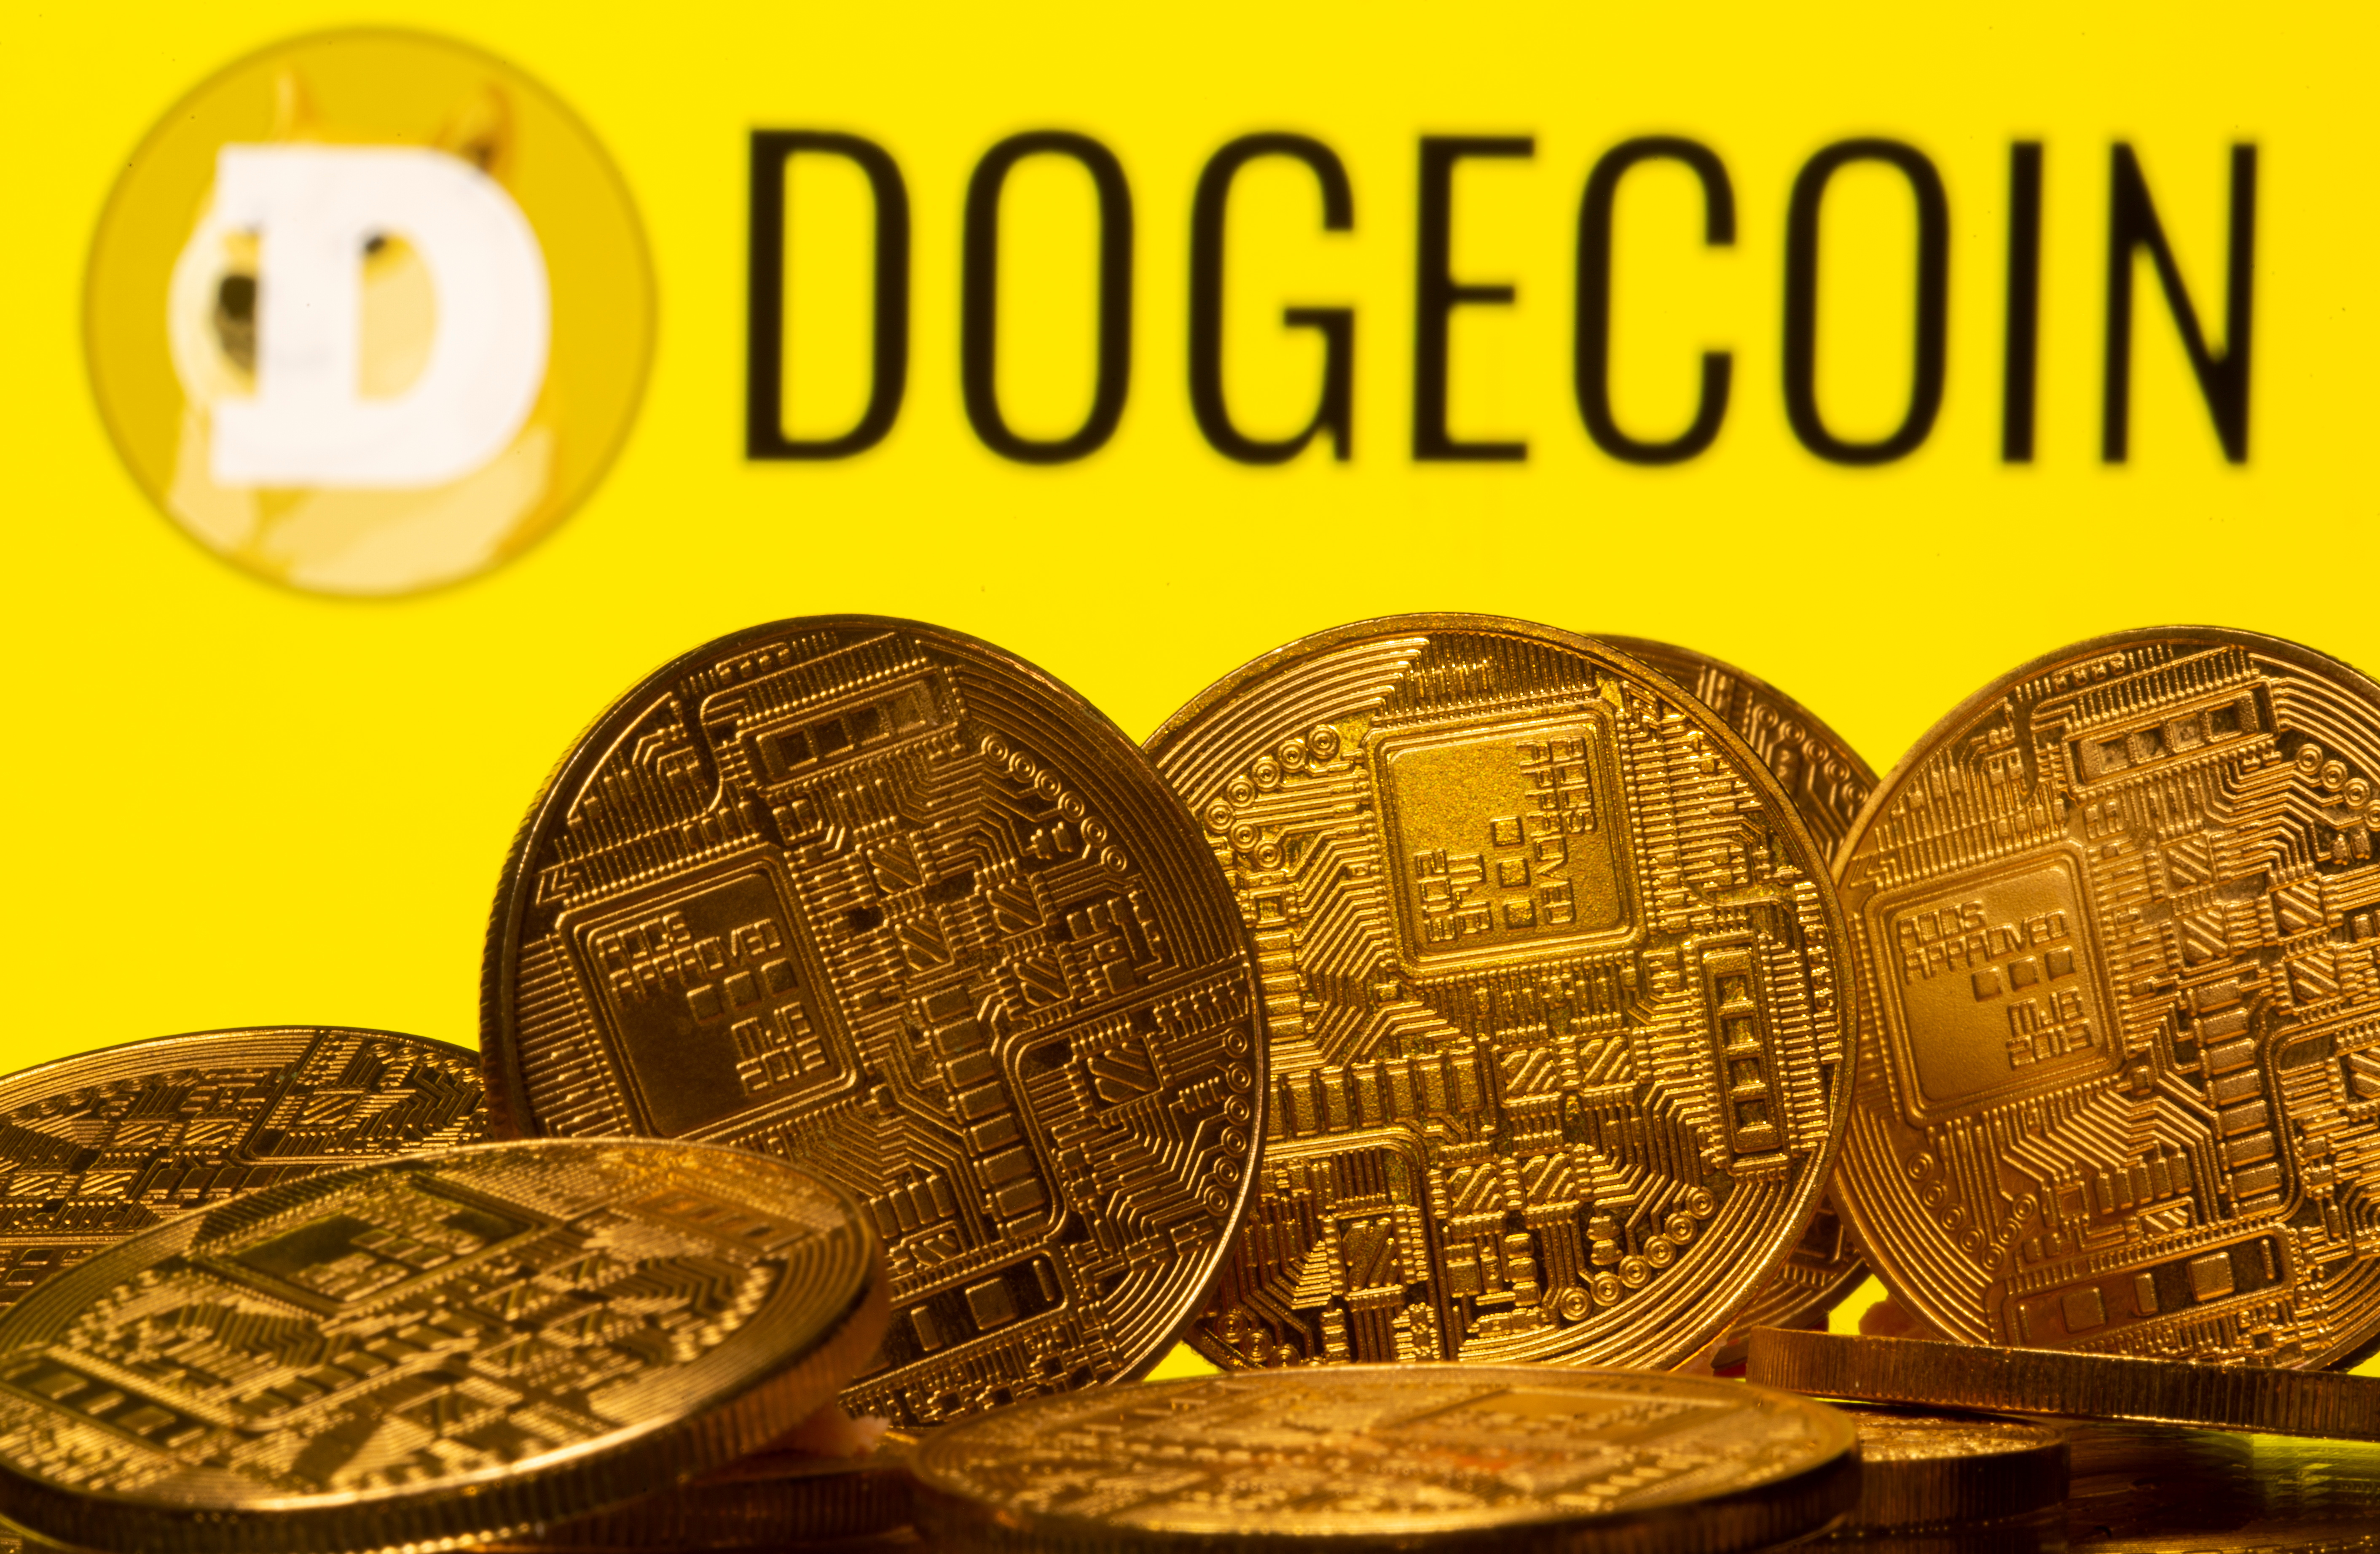 Cryptocurrency representations are seen in front of the Dogecoin logo in this illustration picture taken April 20, 2021. REUTERS/Dado Ruvic/Illustration